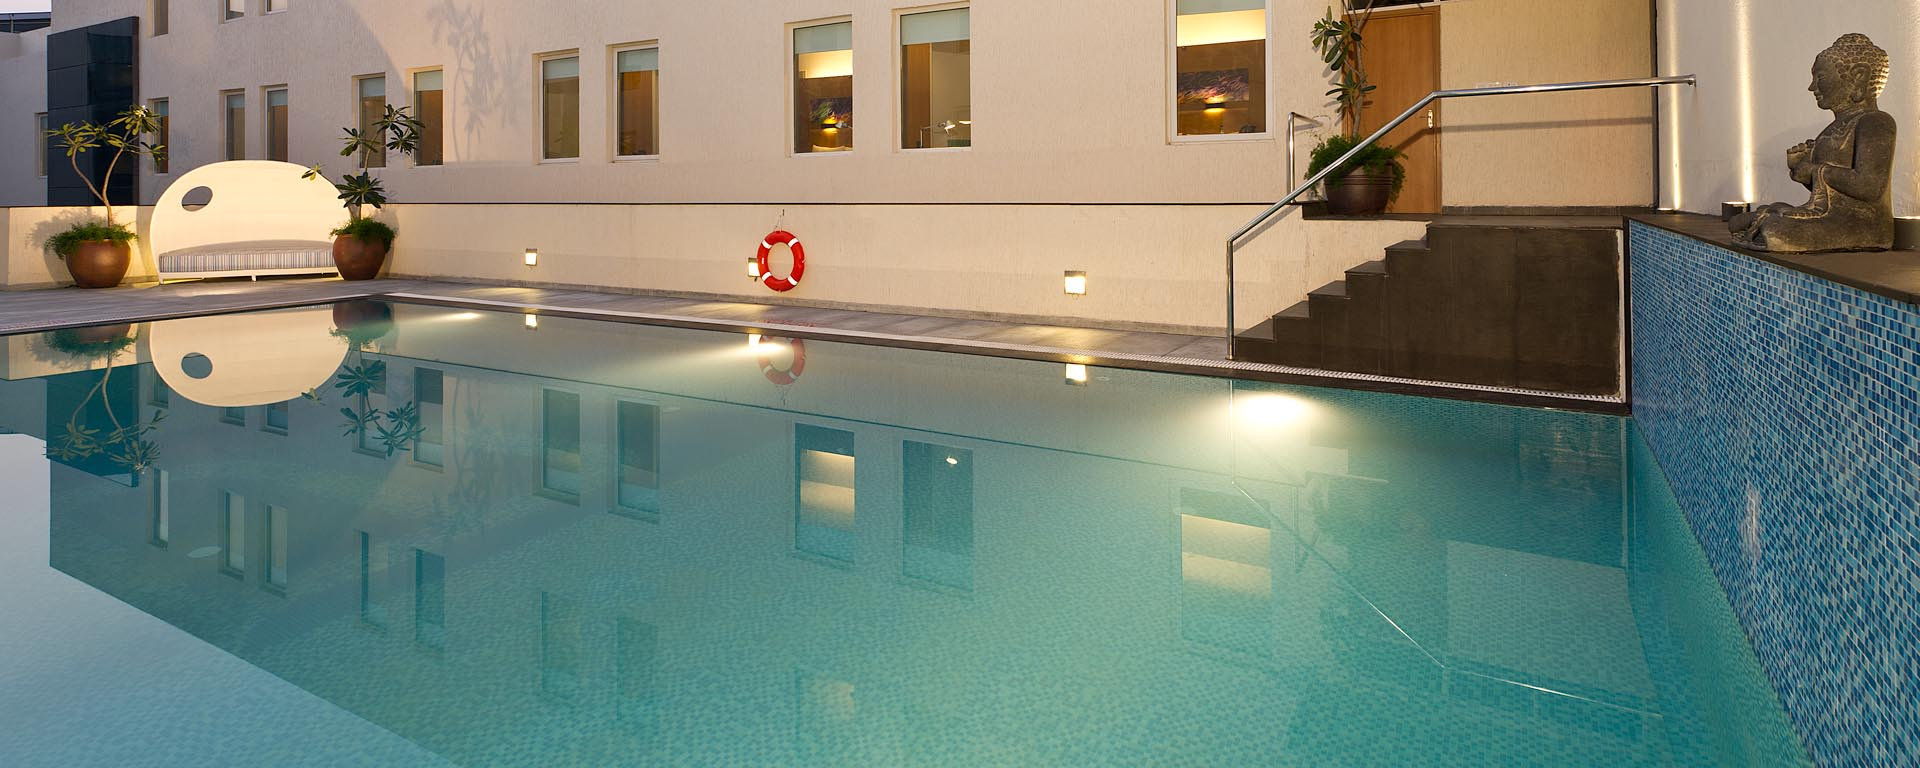 Aloft-swimming-pool